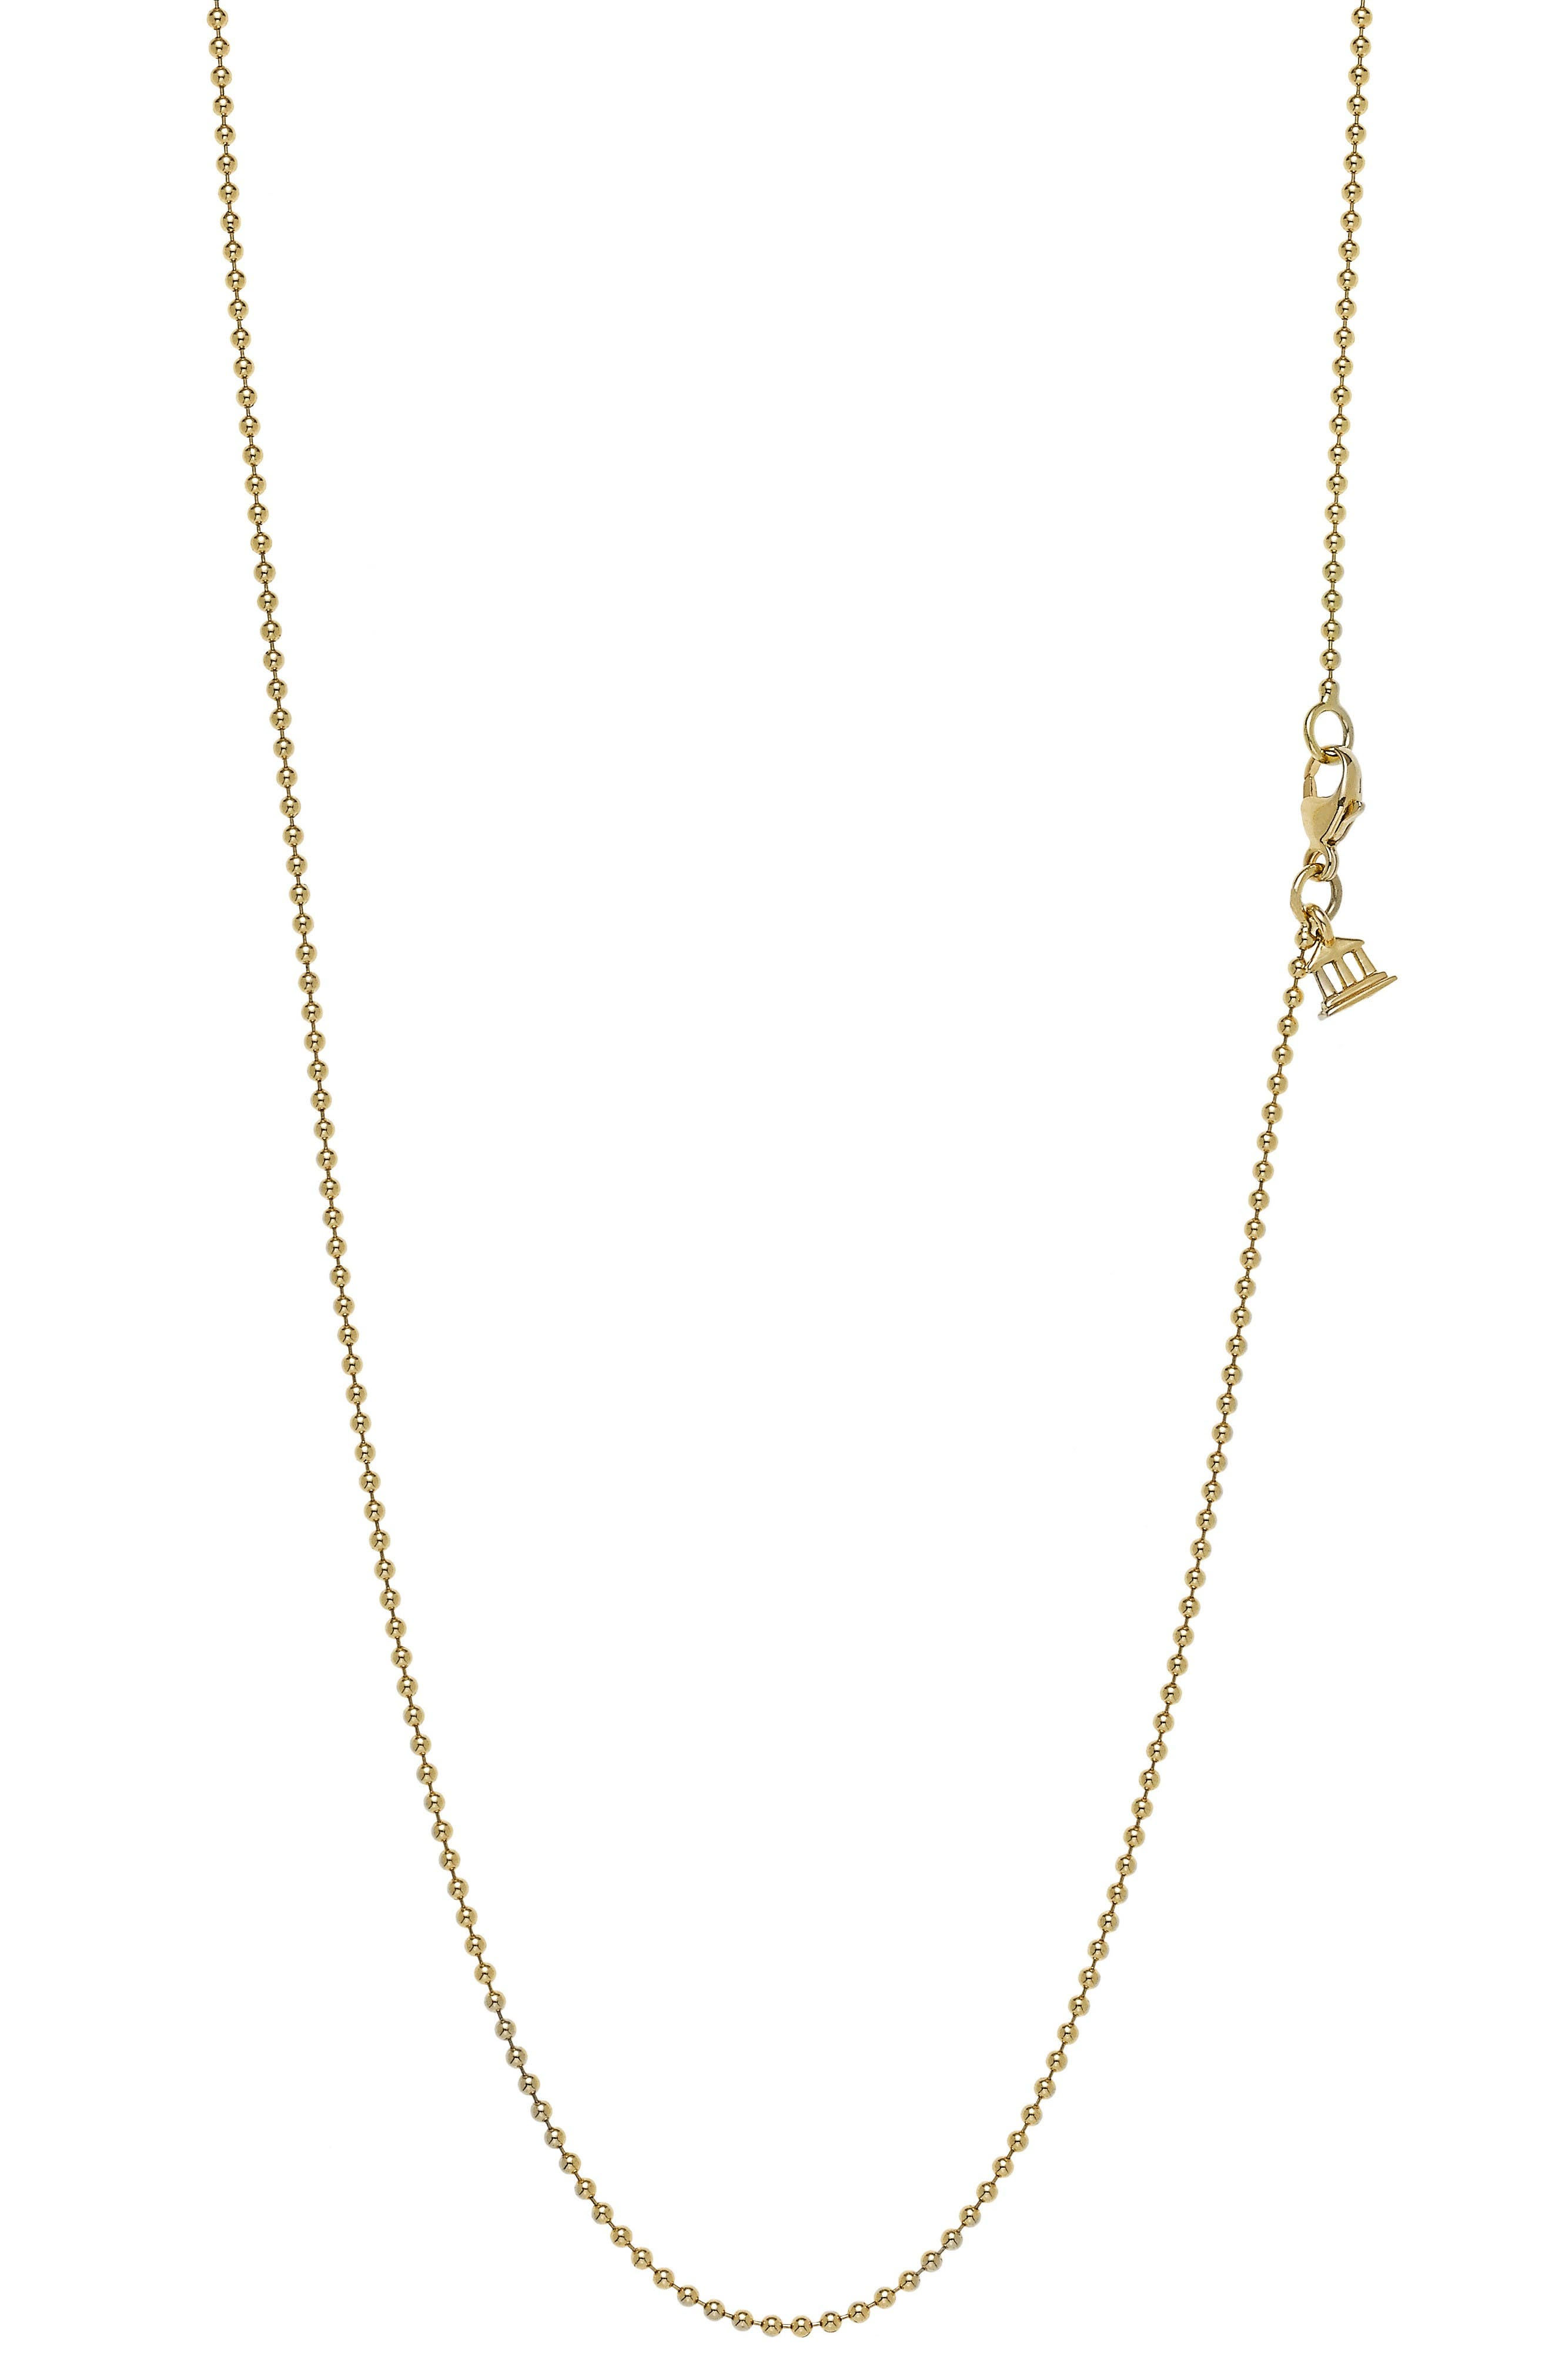 Alternate Image 1 Selected - Temple St. Clair 18-Inch Ball Chain Necklace